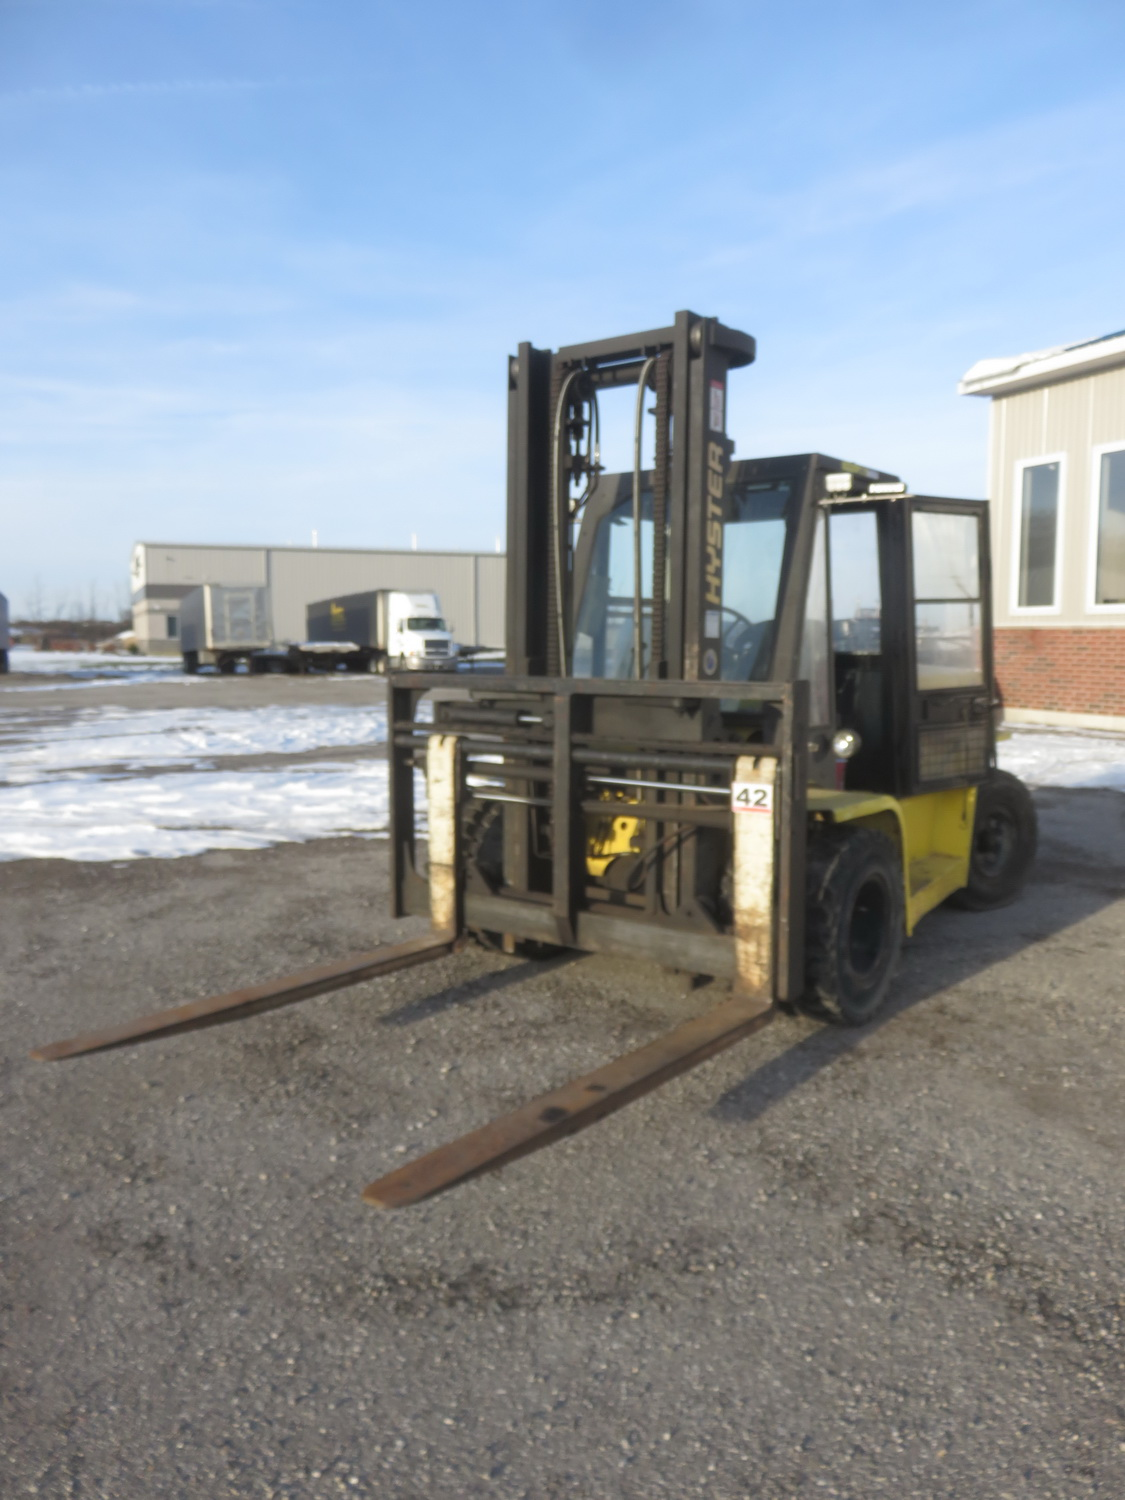 """HYSTER MODEL H155XL PROPANE POWERED ENCLOSED CAB FORKLIFT W/ 14,500LBS CAP., 134"""" LIFT, SIDE SHIFT - Image 4 of 5"""